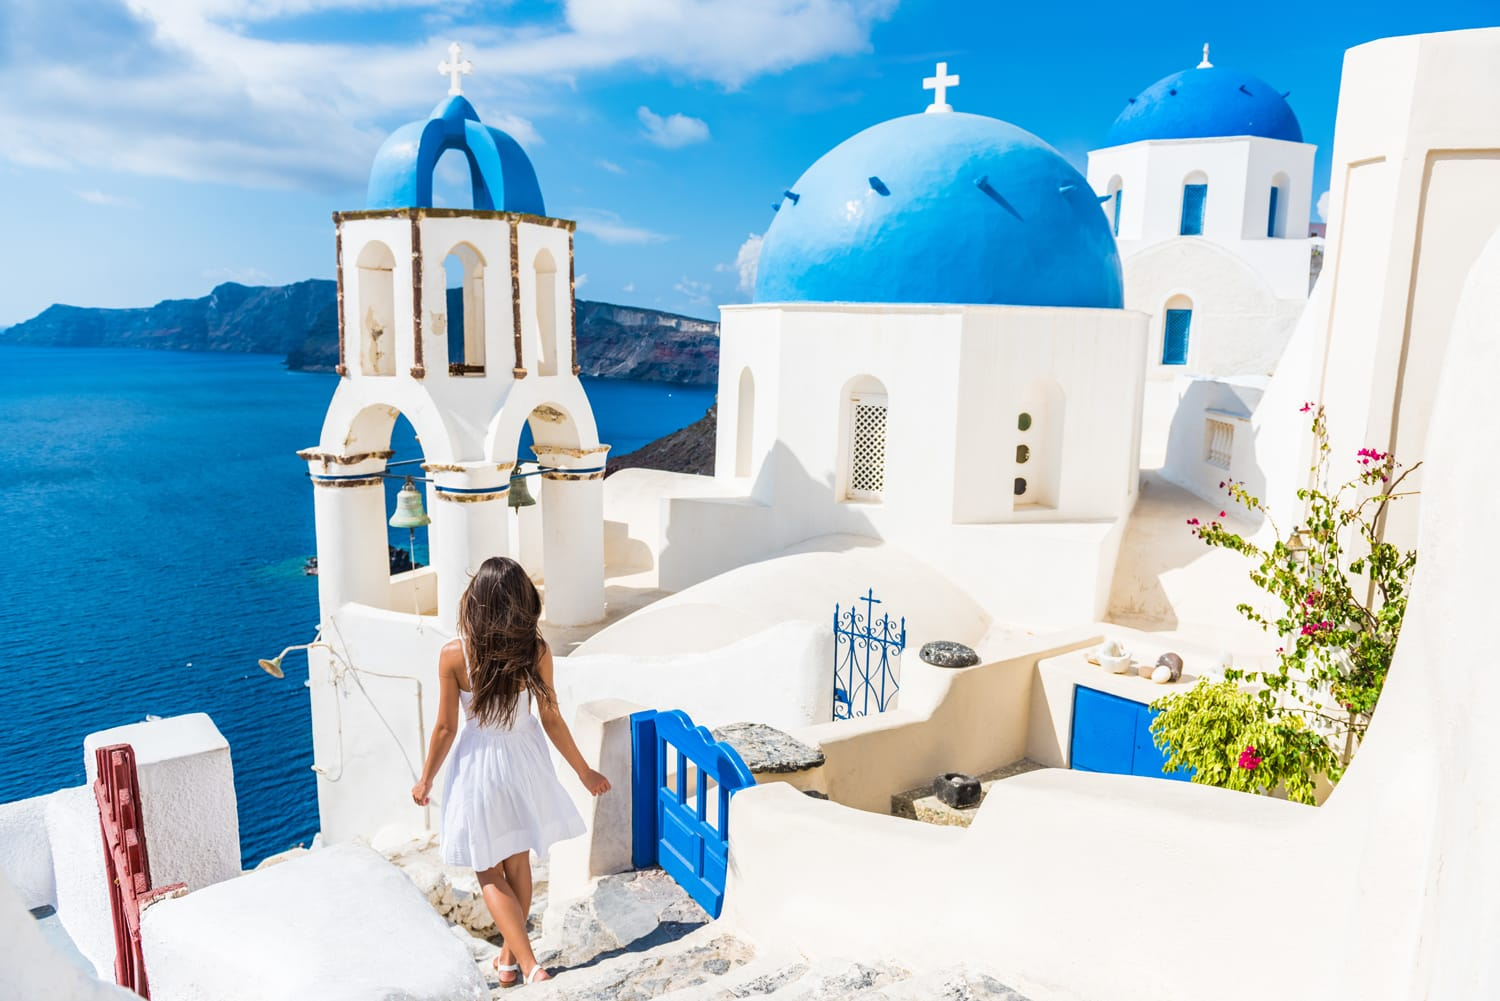 Santorini travel tourist woman on vacation in Oia walking on stairs. Person in white dress visiting the famous white village with the mediterranean sea and blue domes.